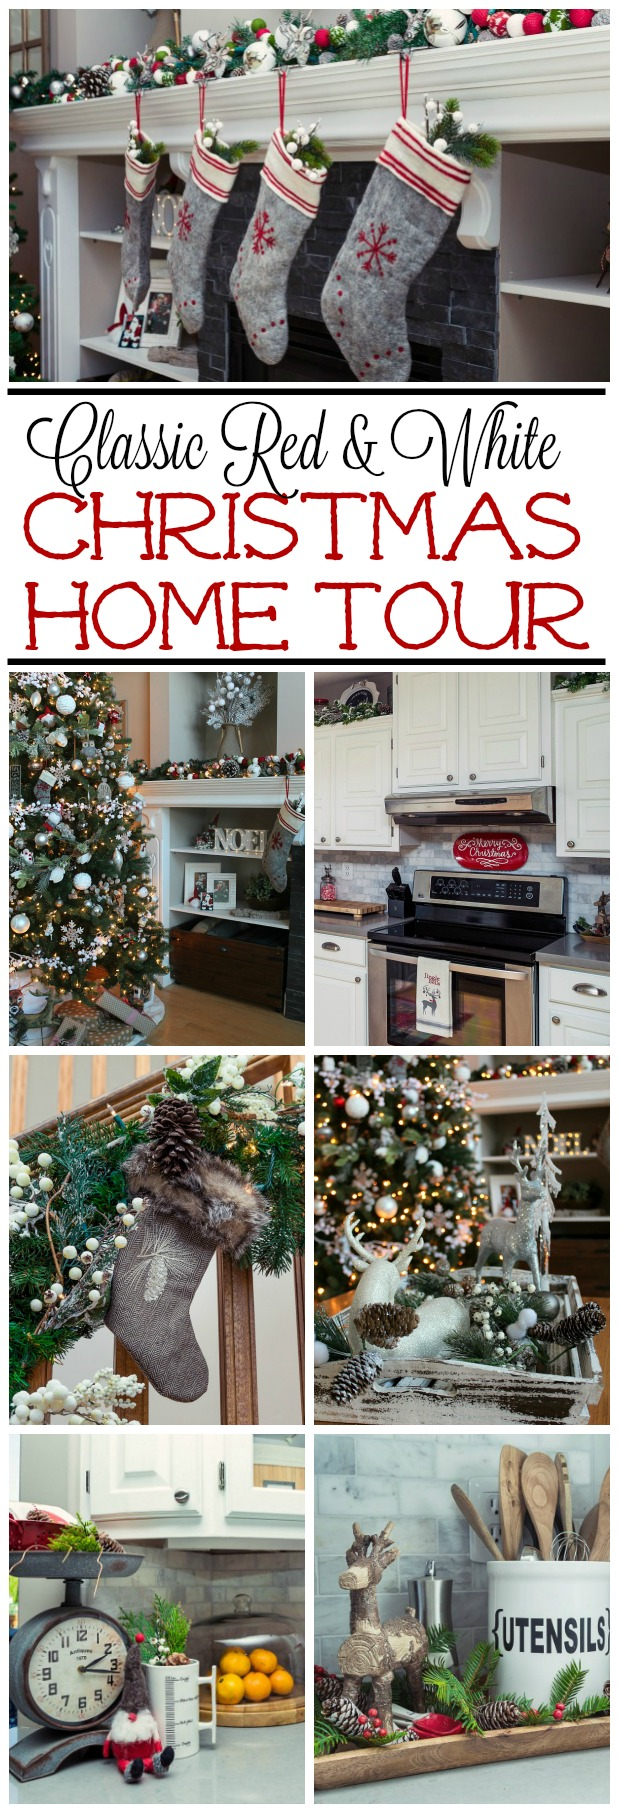 Home Tour In Classic Red And White Lots Of Easy Christmas Decorating